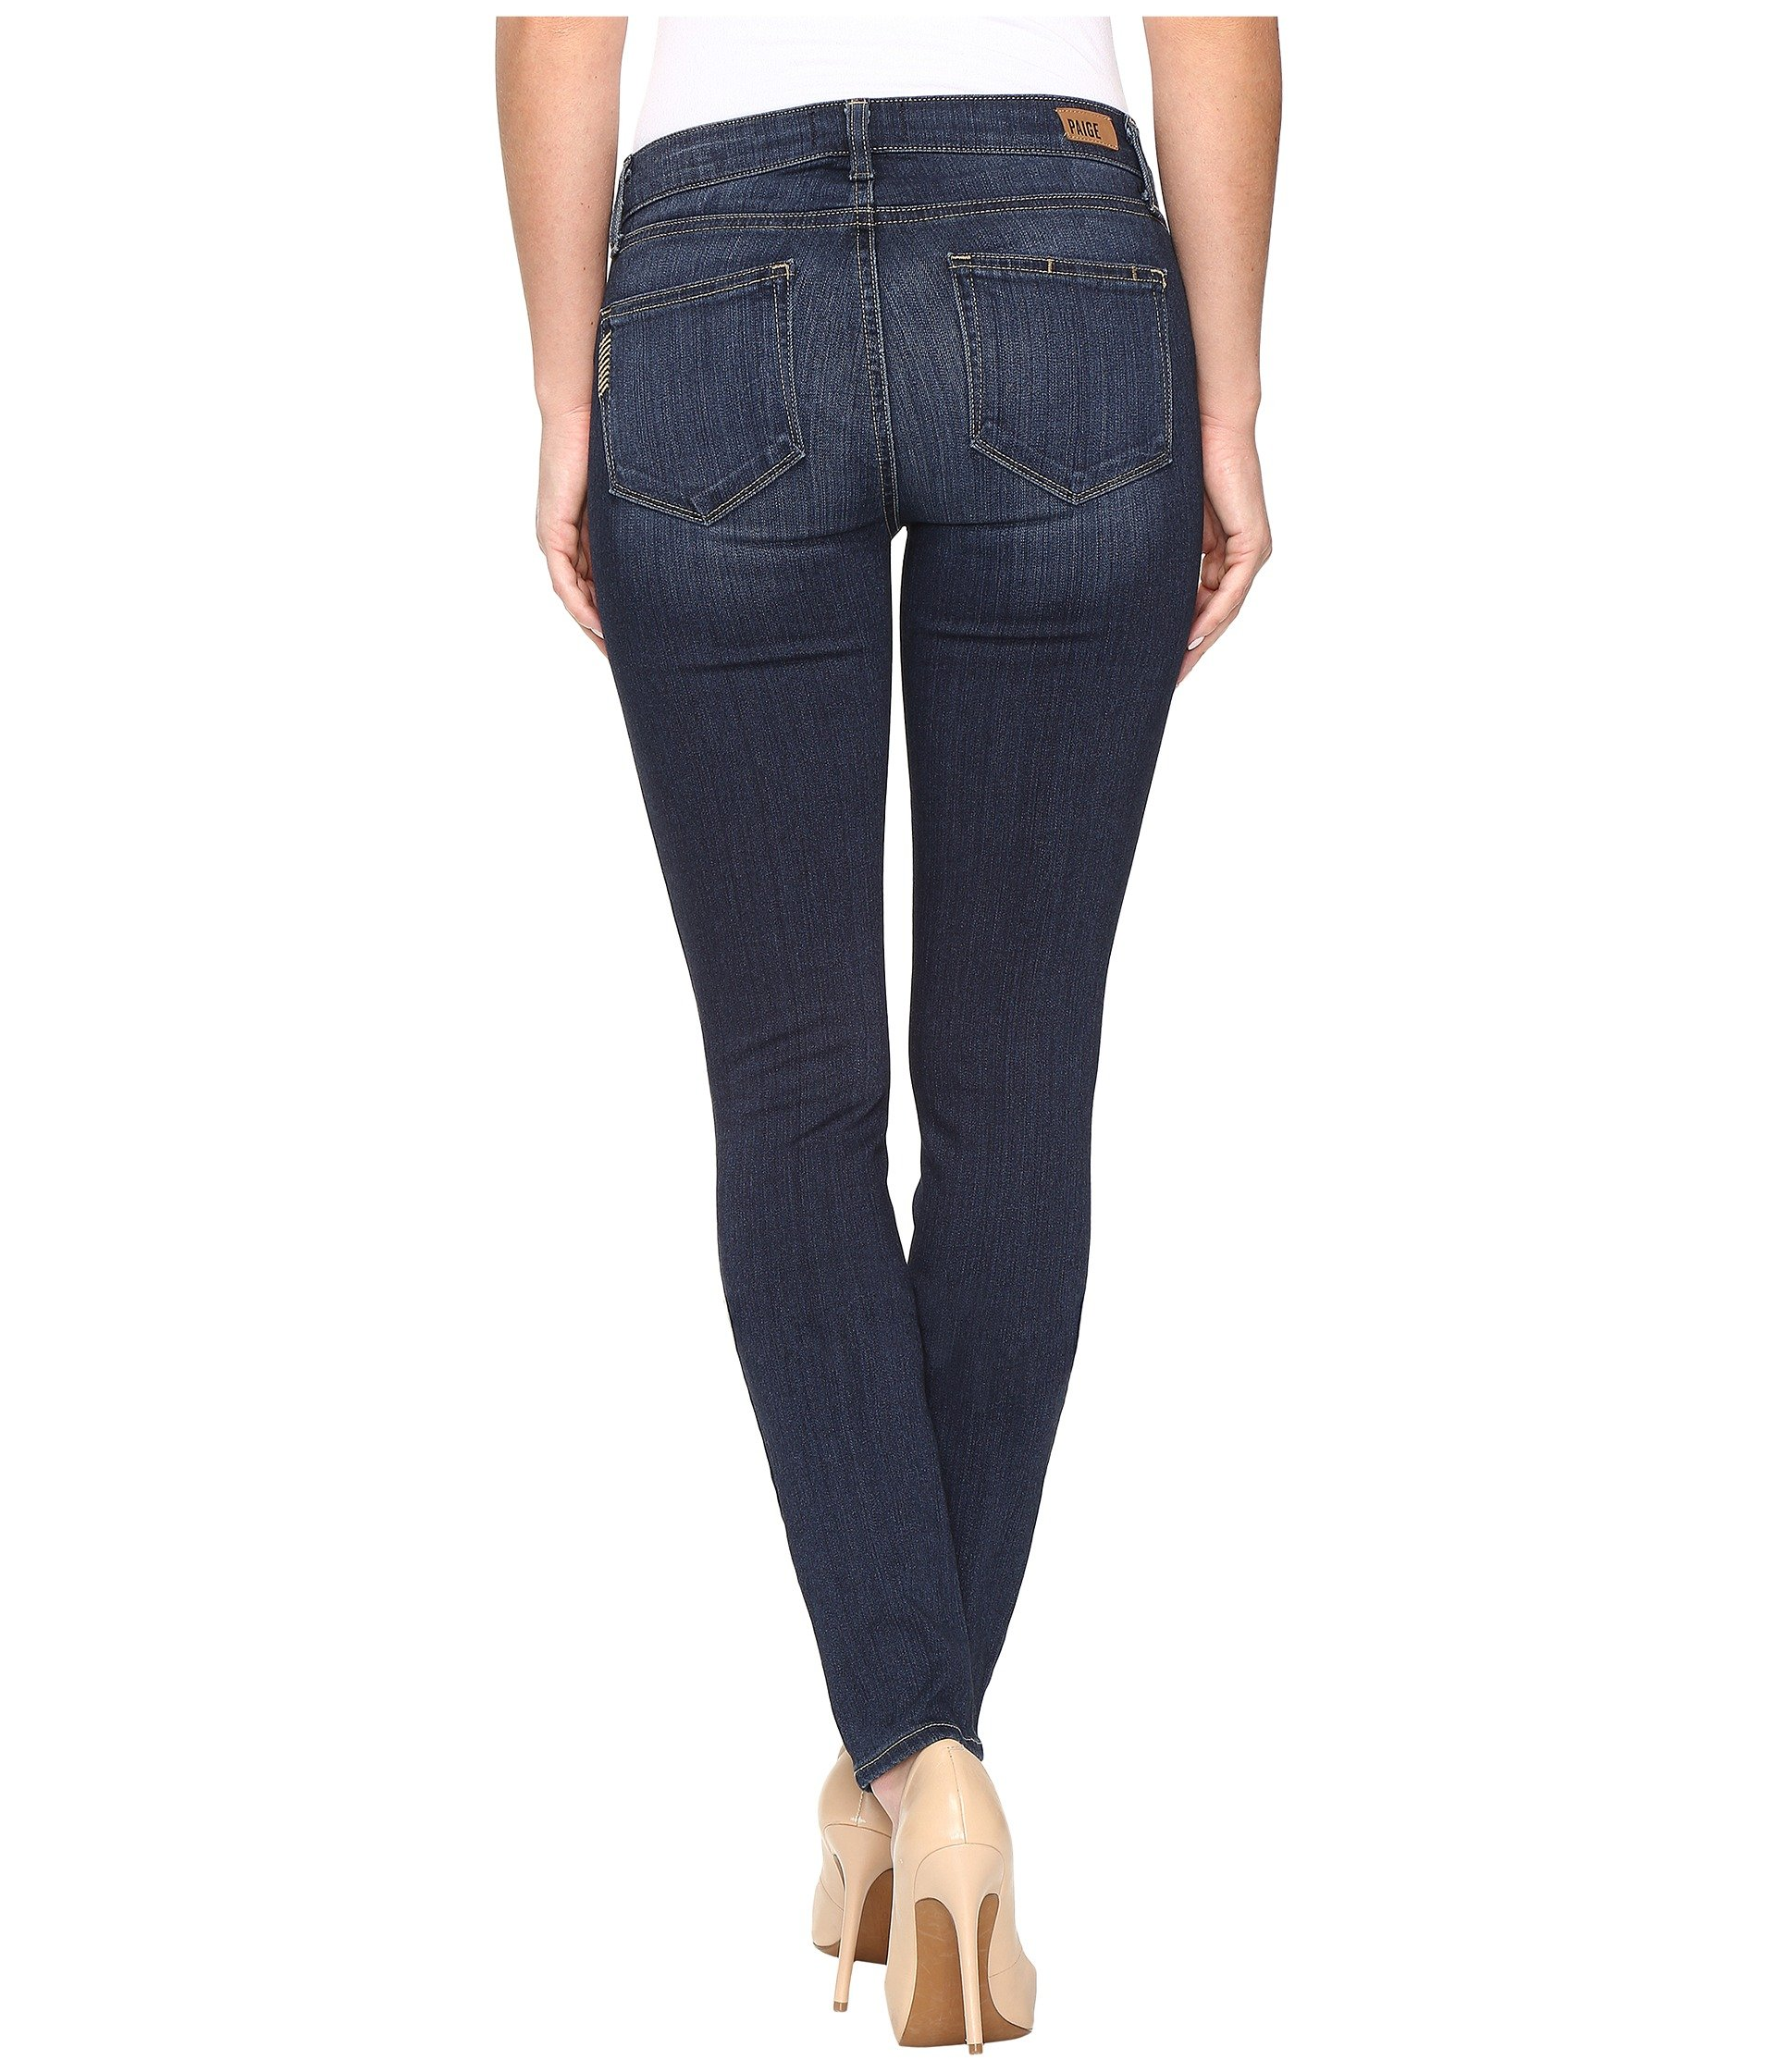 Paige edgemont ultra skinny in alden no whiskers at 6pm for The edgemont